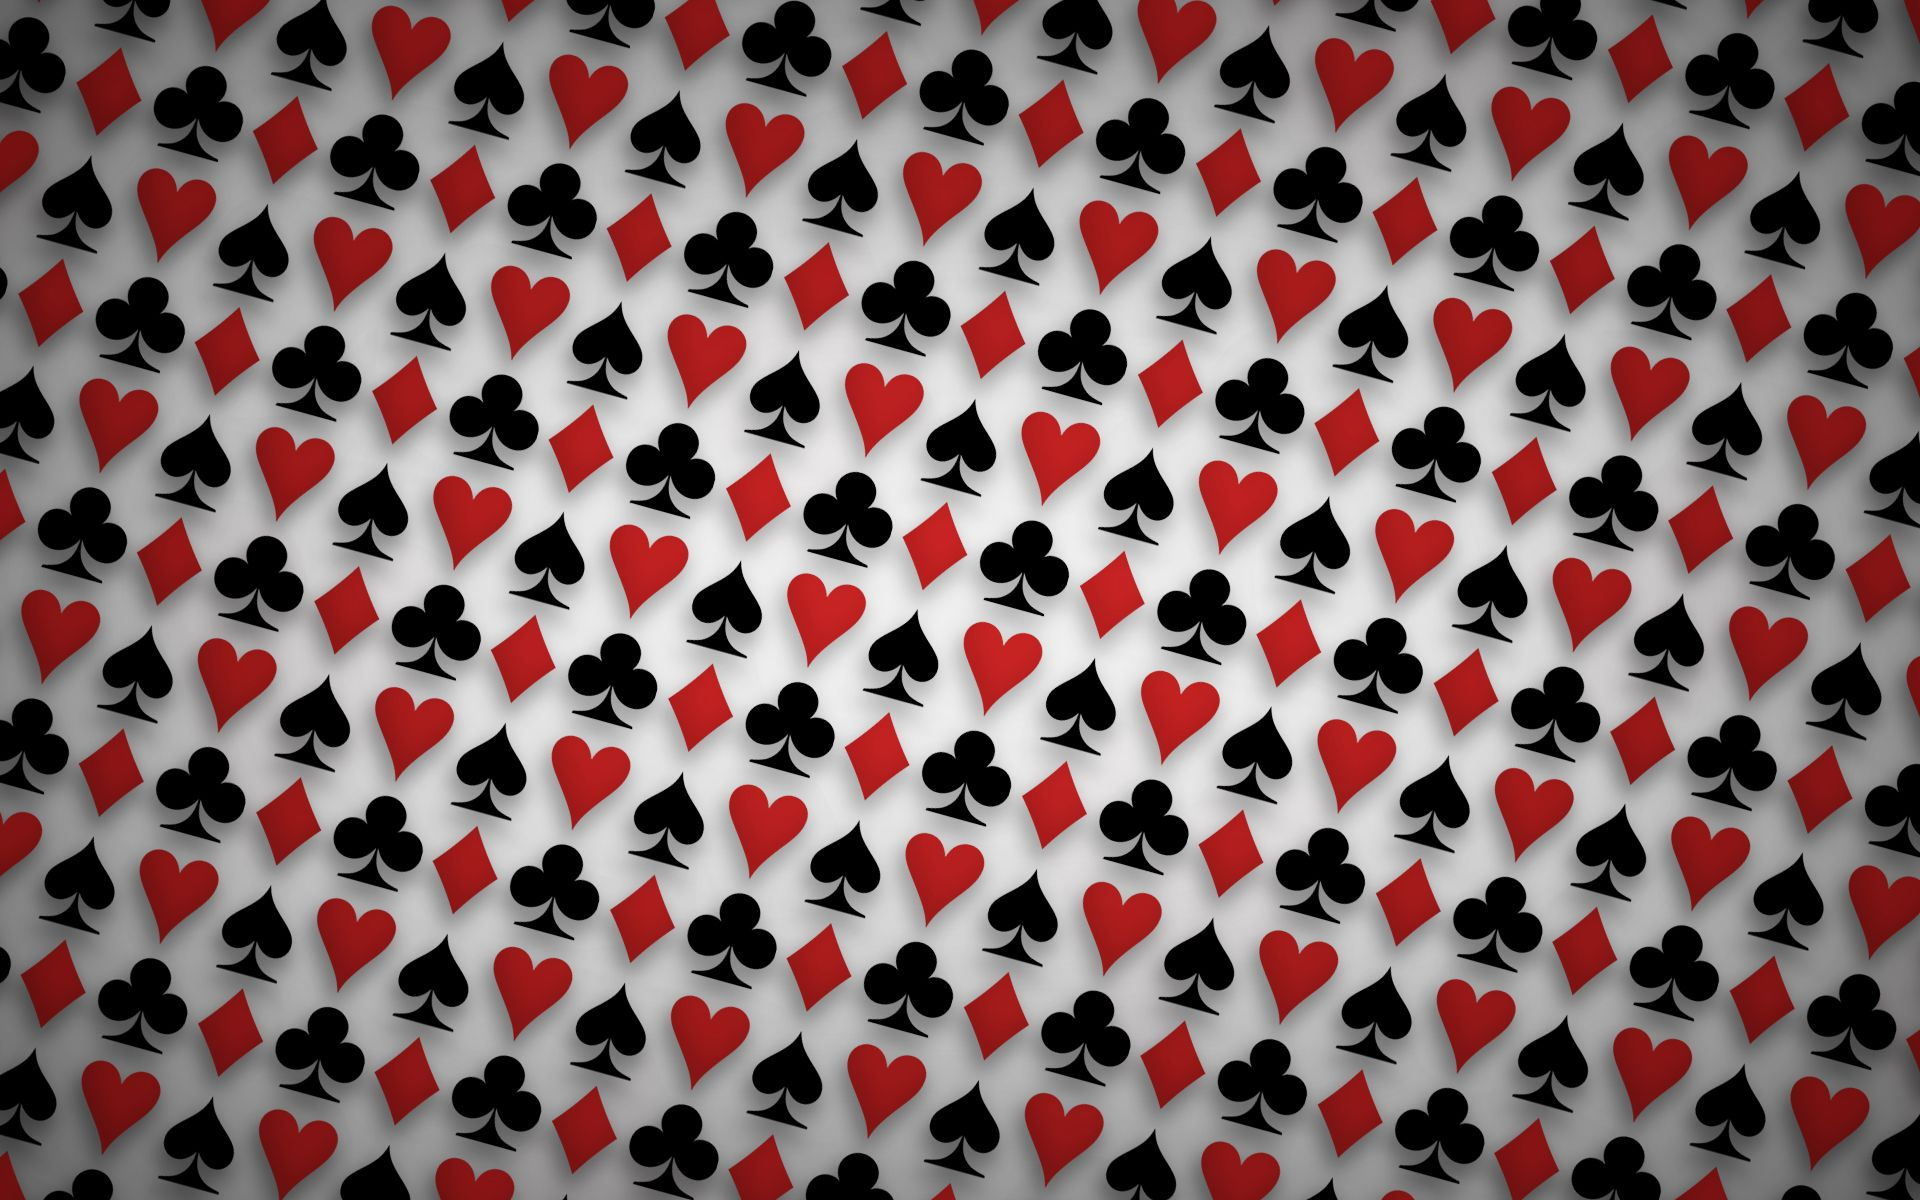 Undeniable Facts About Poker